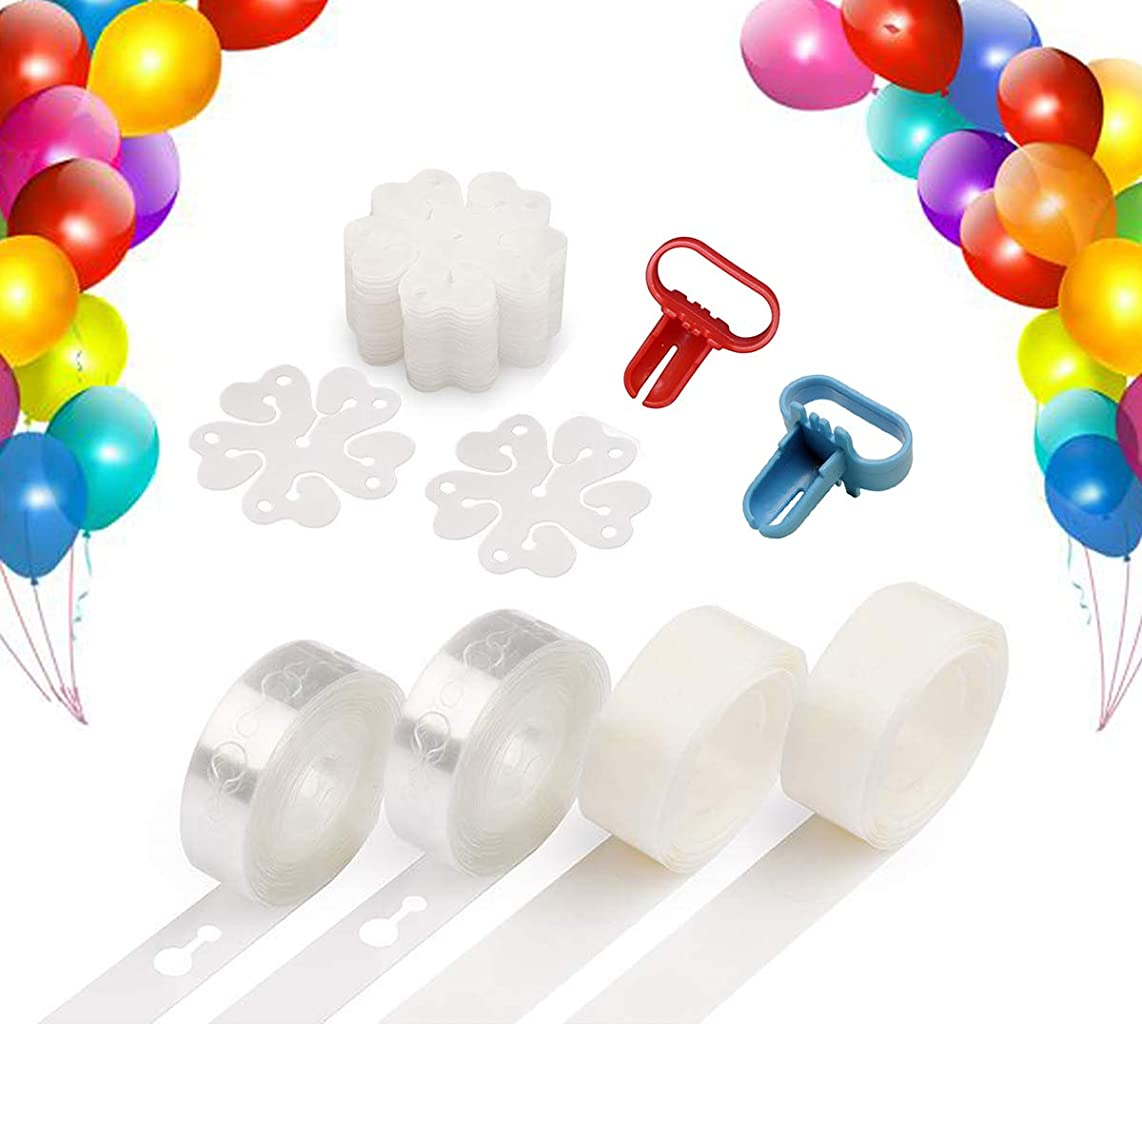 Balloon Decorating Strip Kit,Fashionclubs Balloon Arch Garland Decoration Kit 32Ft Balloon Tape Strip,1 Balloon Tying Tool,200 Balloon Dot Glue,20 Flower Clip for Wedding Bithday Baby Shower Party DIY